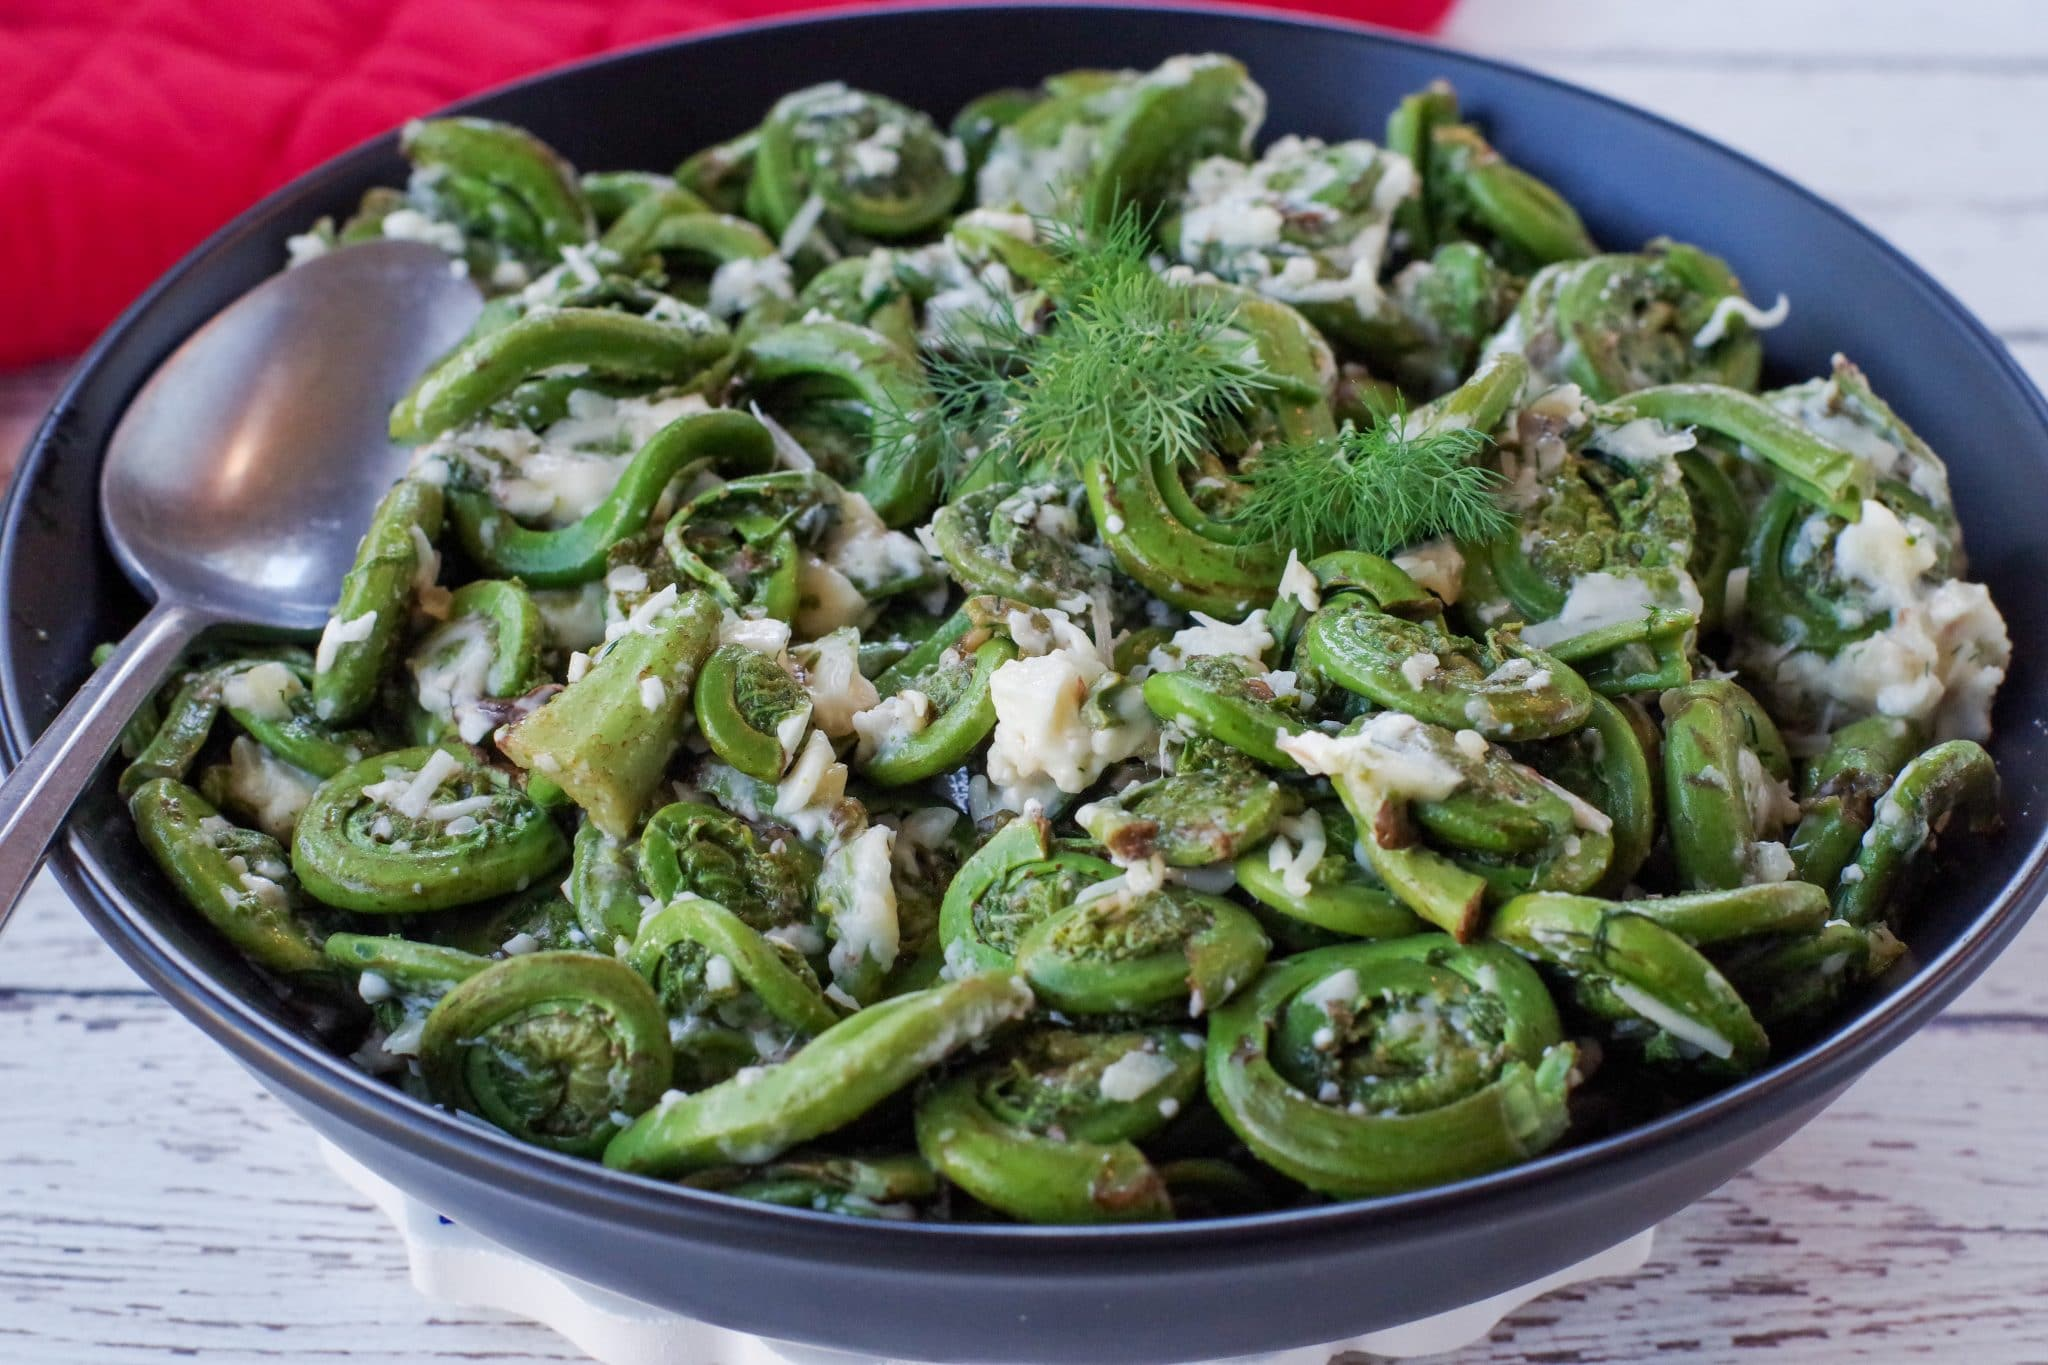 Cheesy Sauteed fiddleheads in a black bowl with a red oven mitt in the background